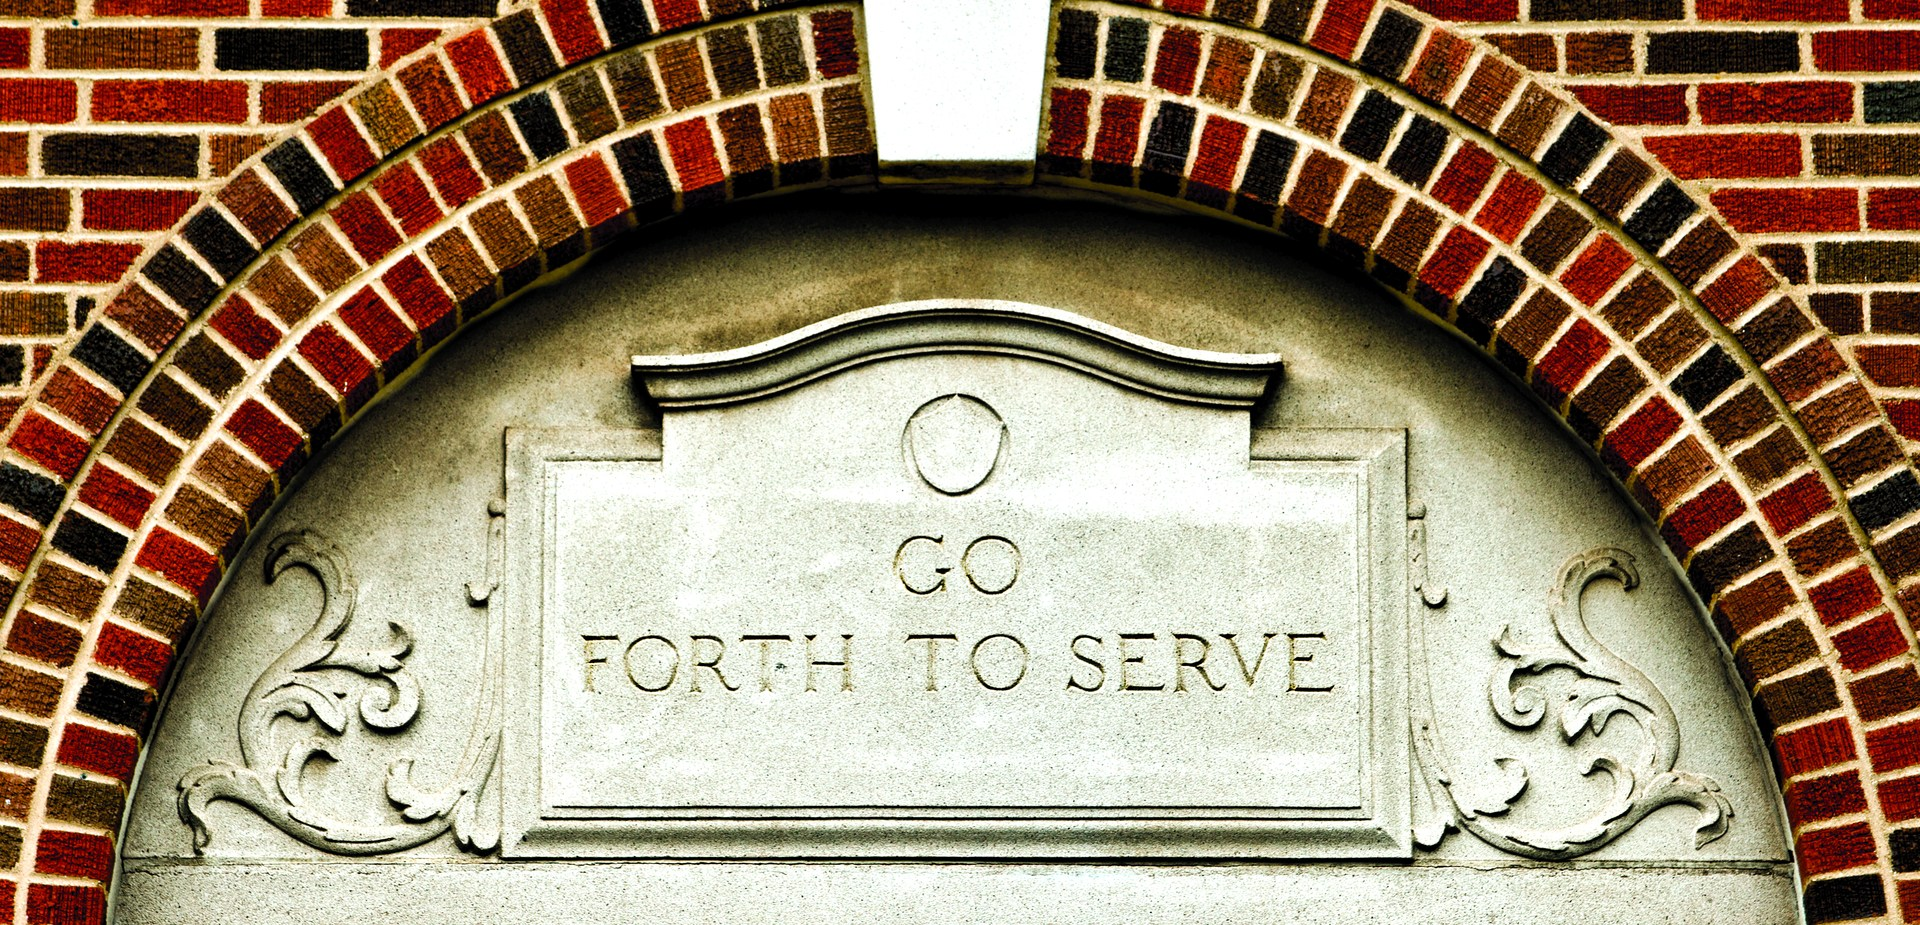 Go Forth to Serve